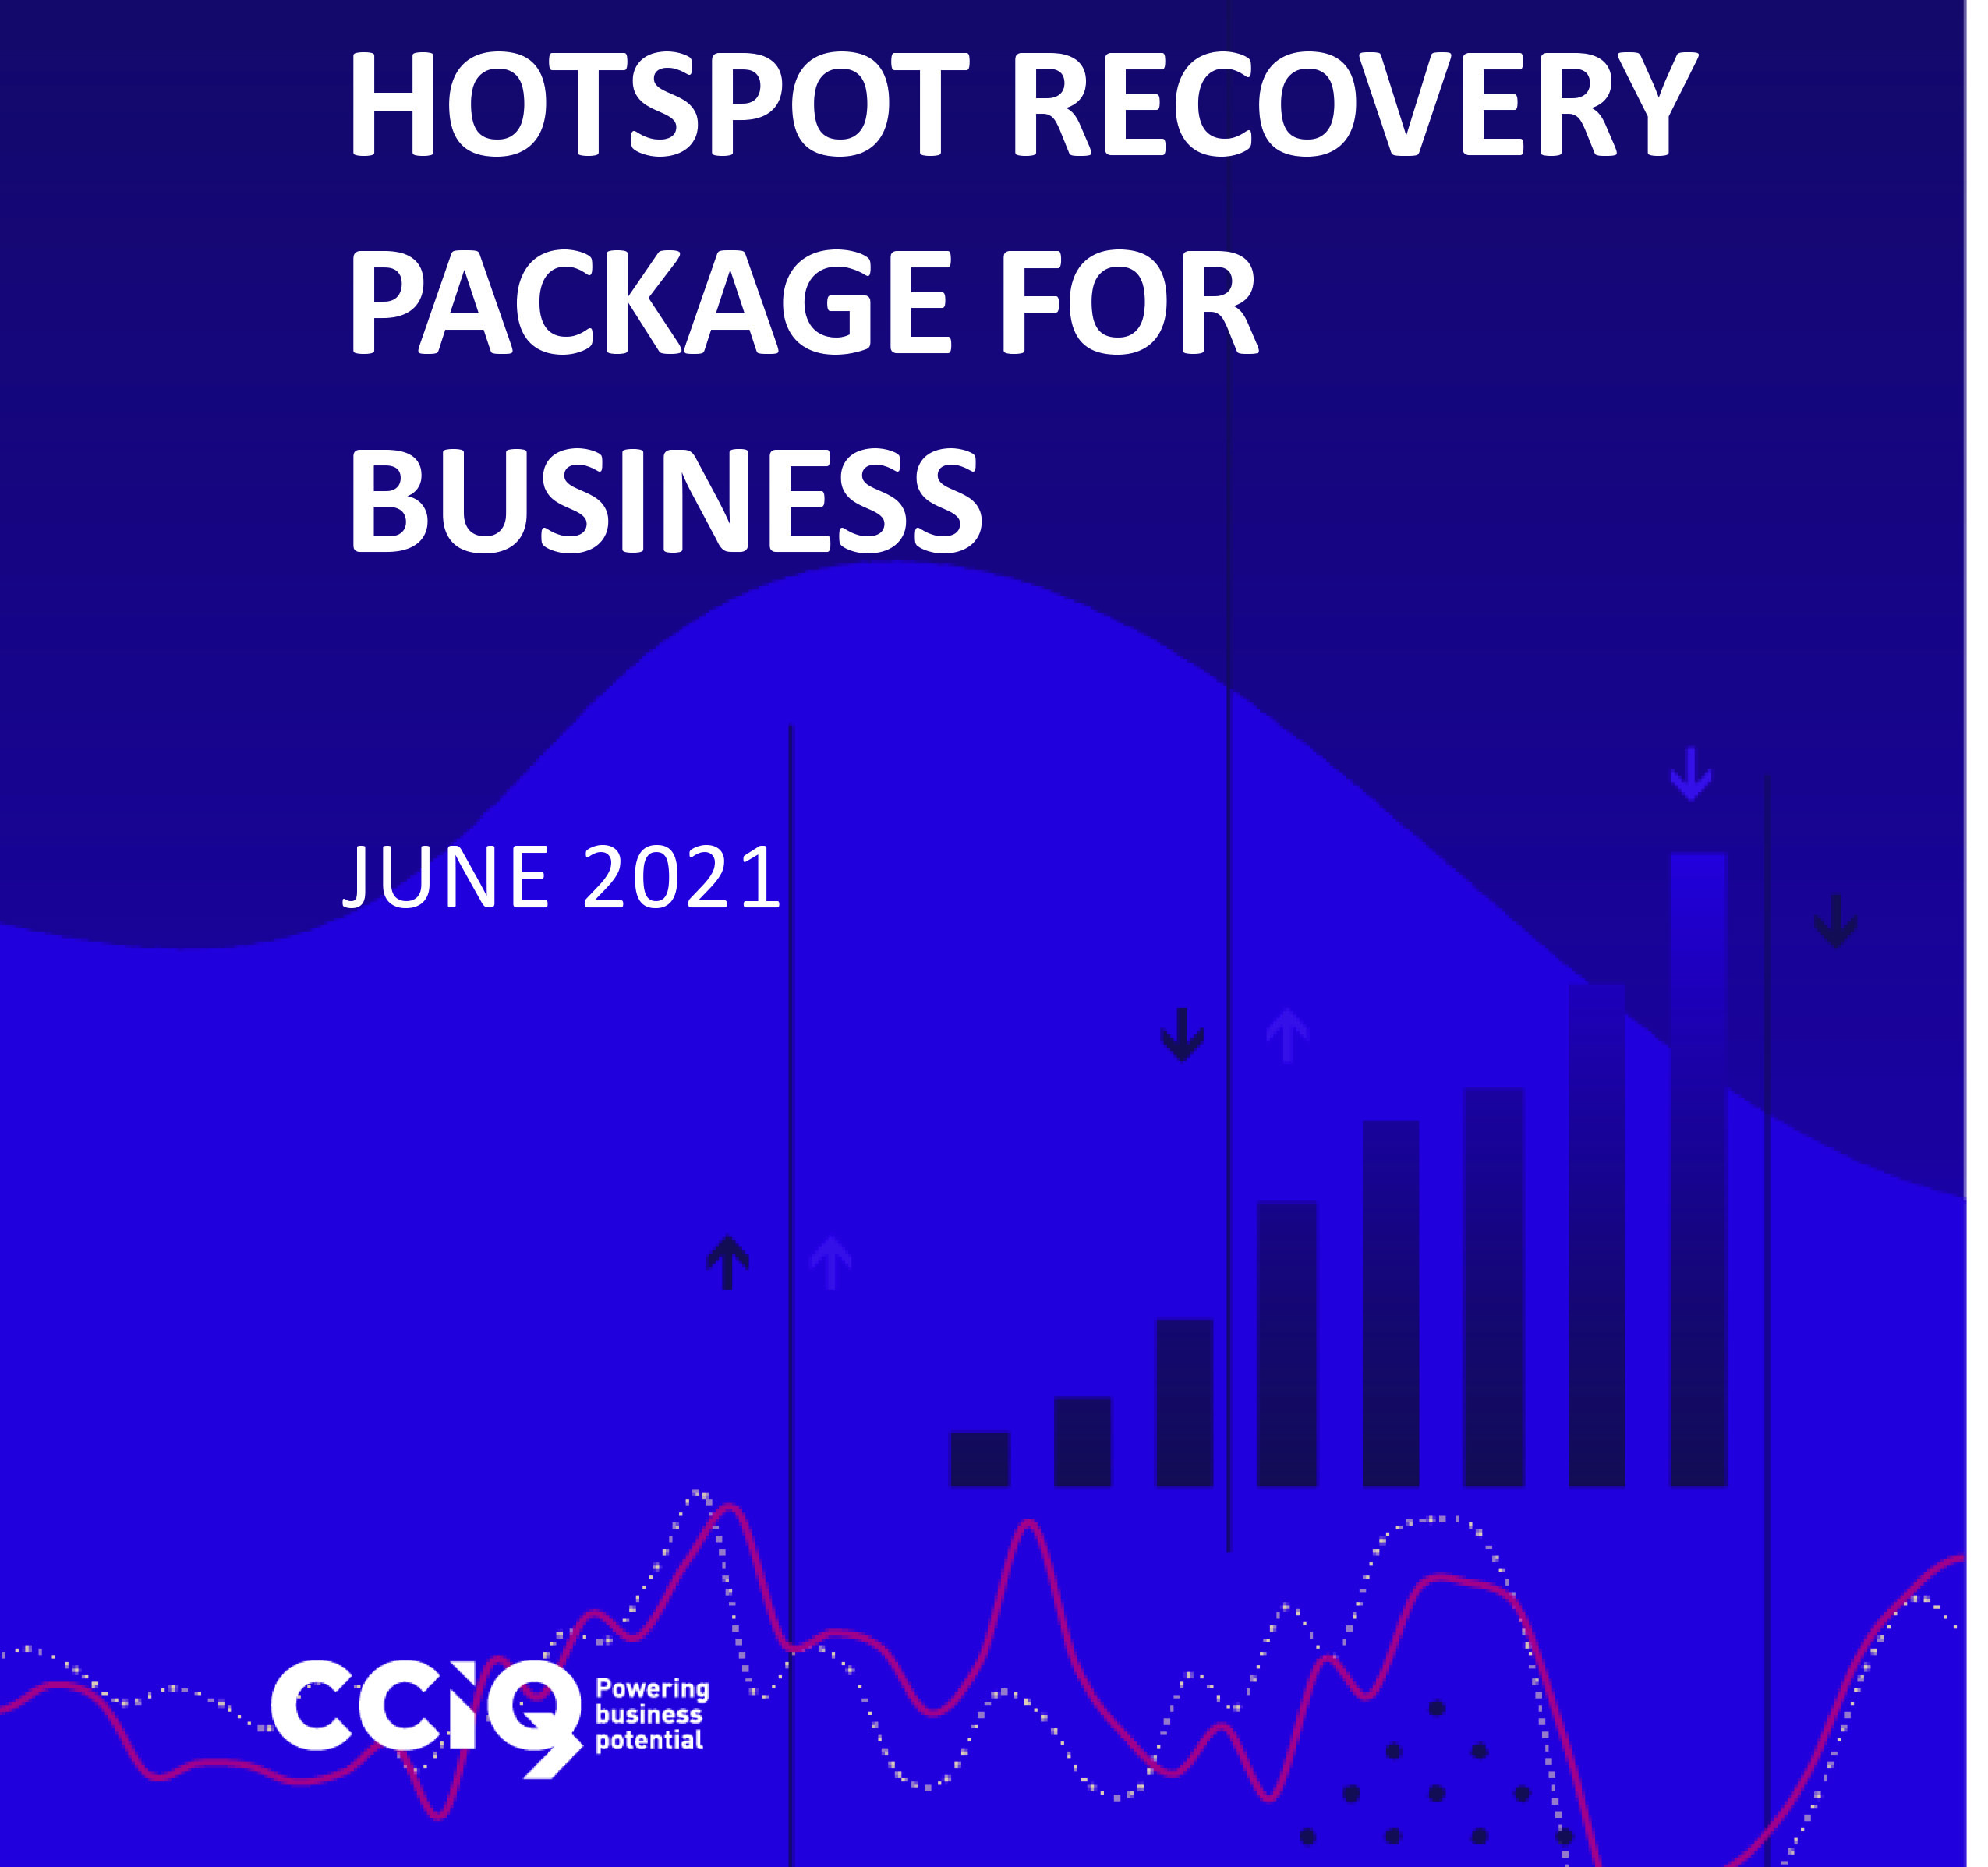 CCIQ message: COVID-19 Hotspot Recovery package